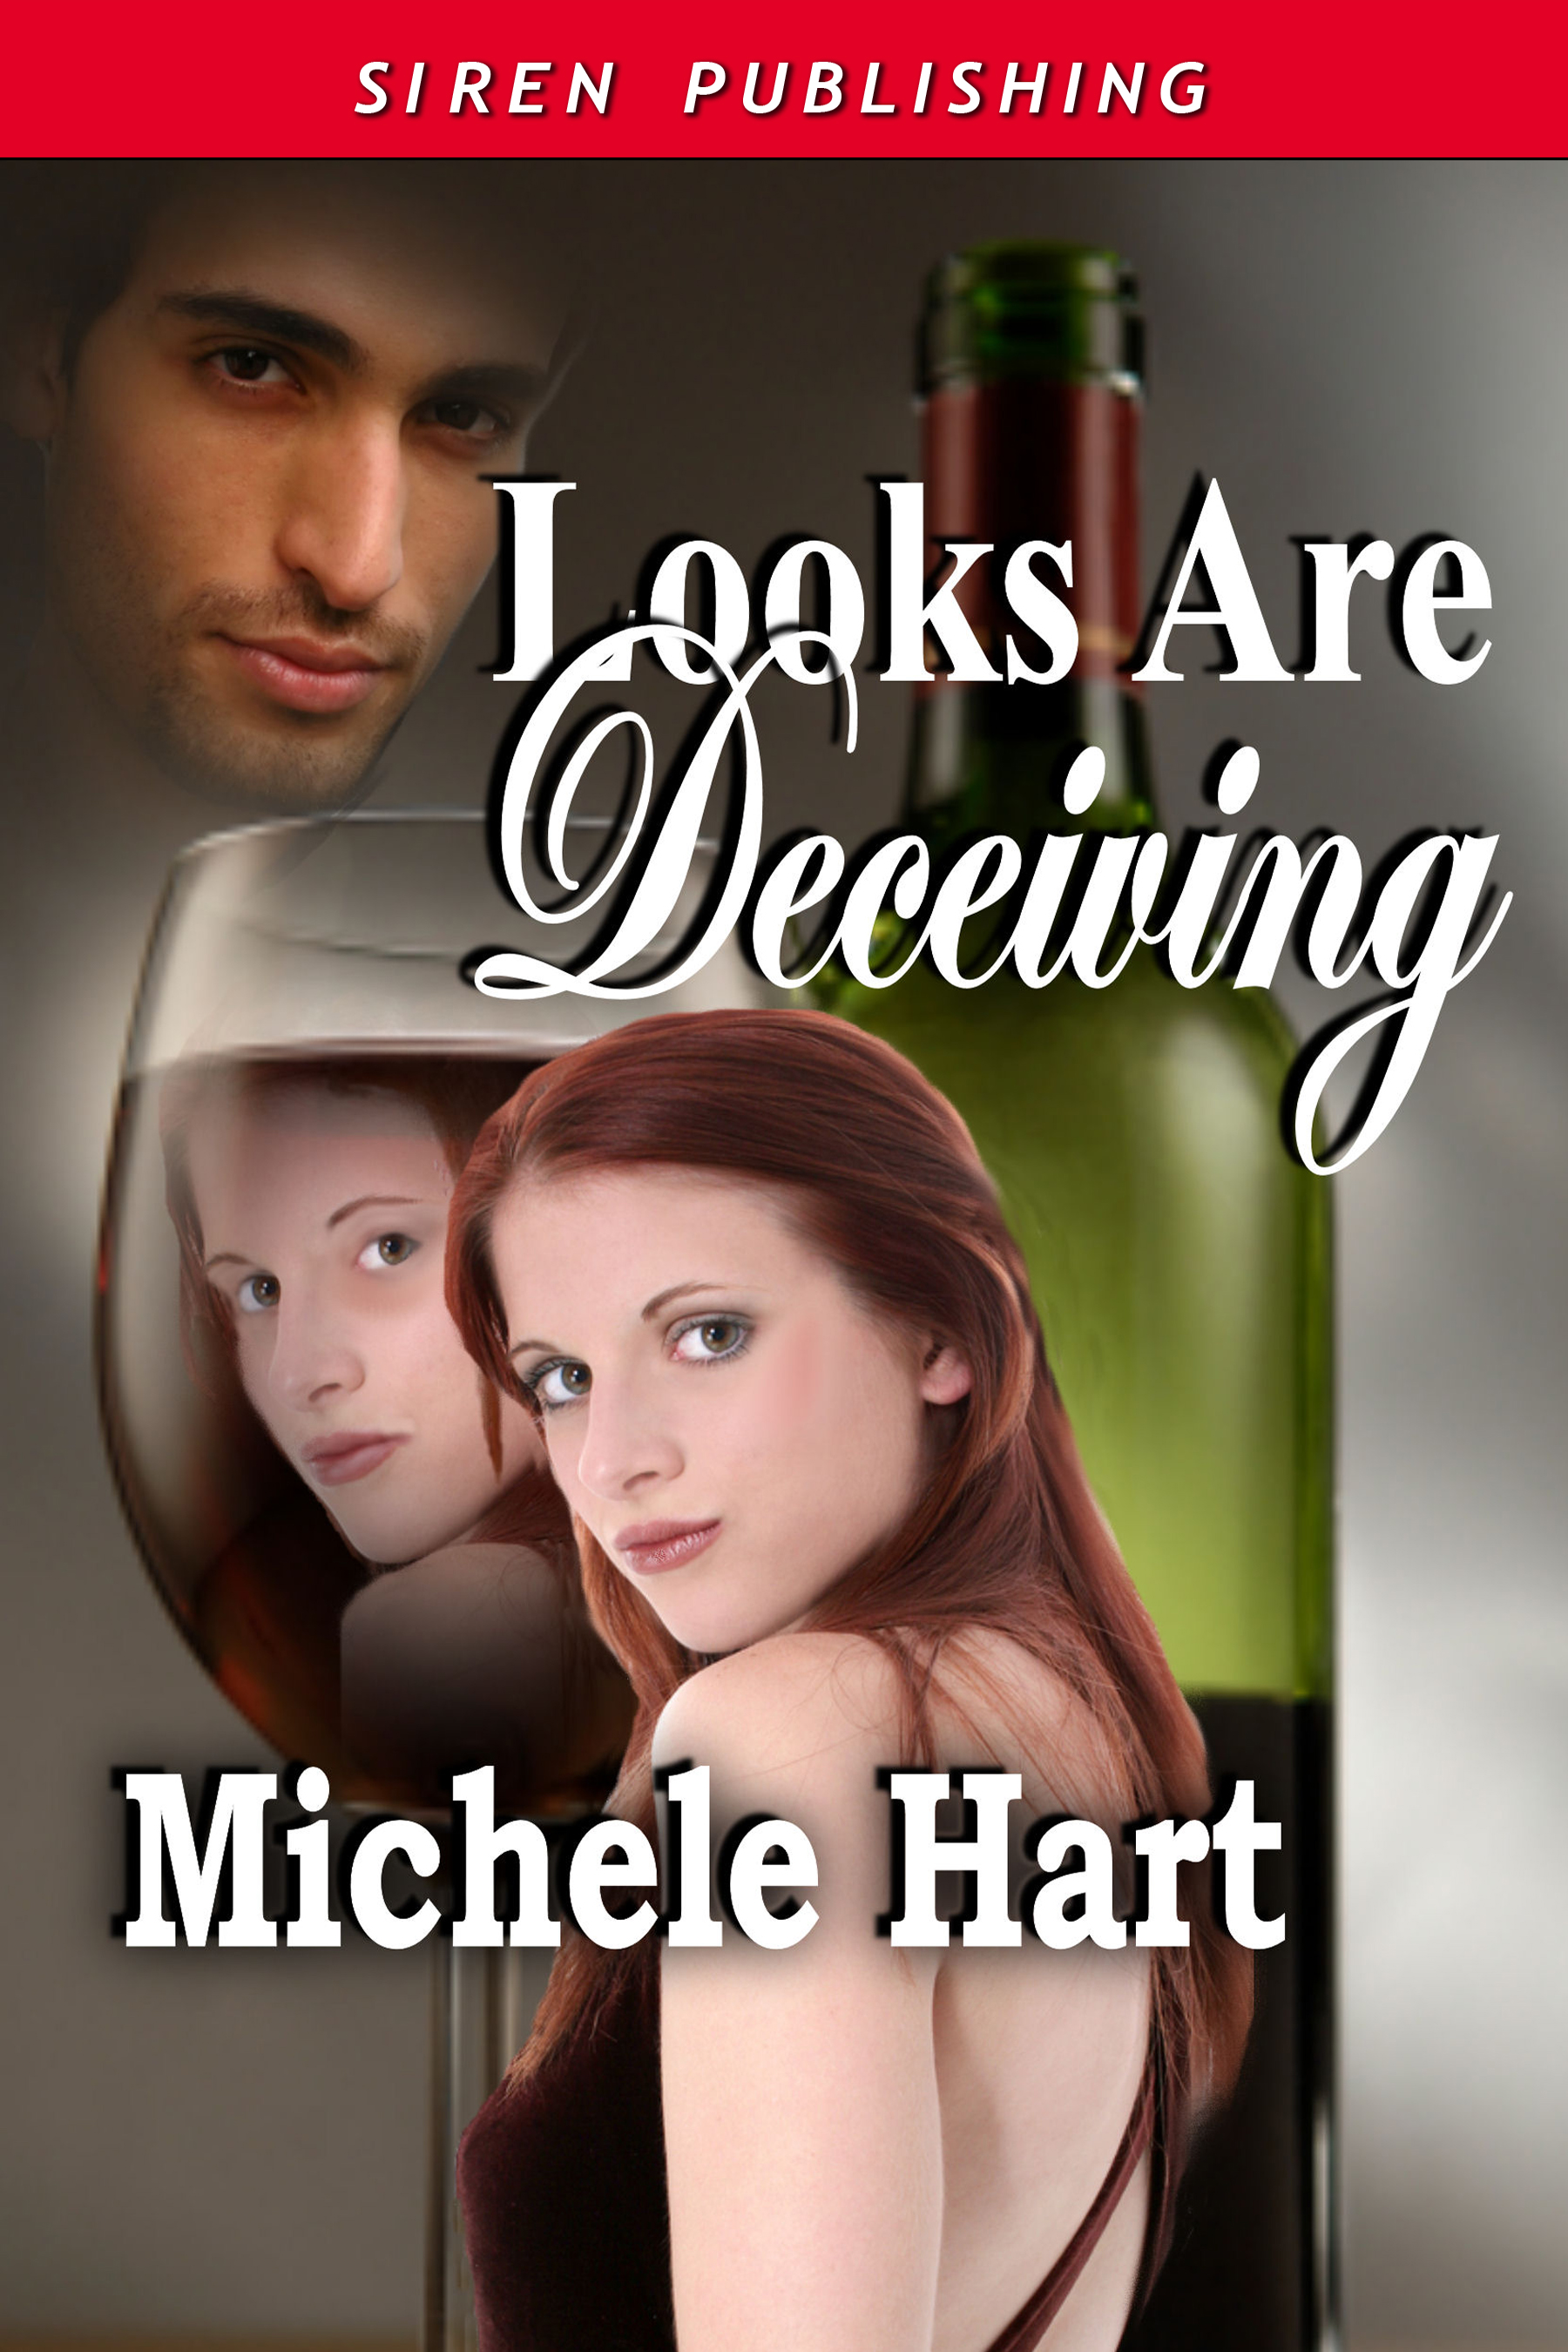 Looks Are Deceiving by Michele Hart